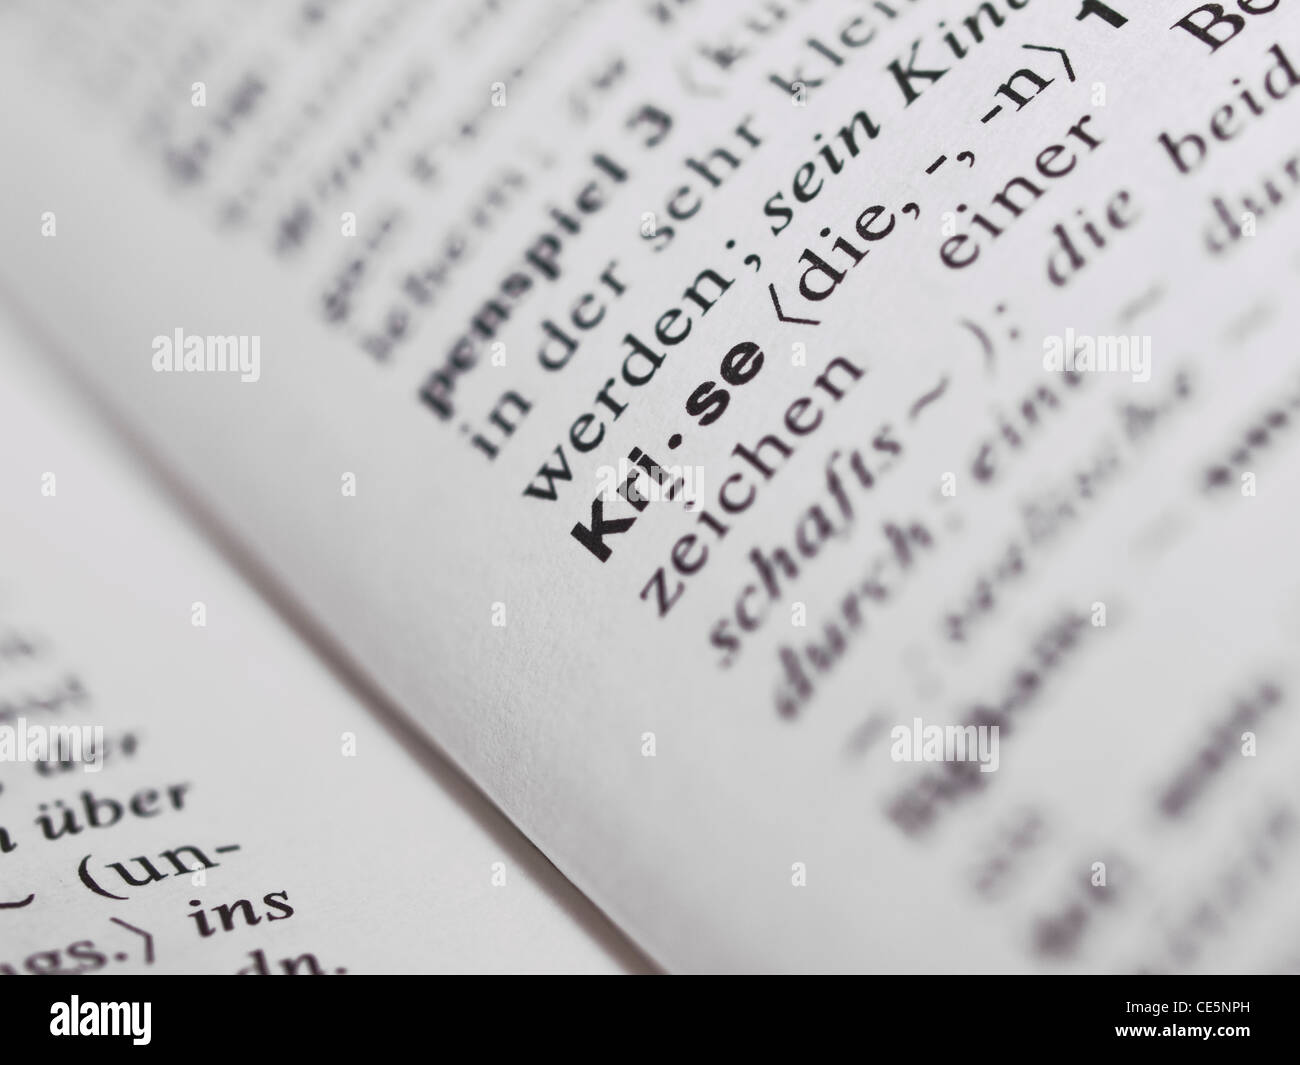 Deutsches Wörterbuches mit dem Begriff 'Krise' | German dictionary with the item 'crisis' in - Stock Image